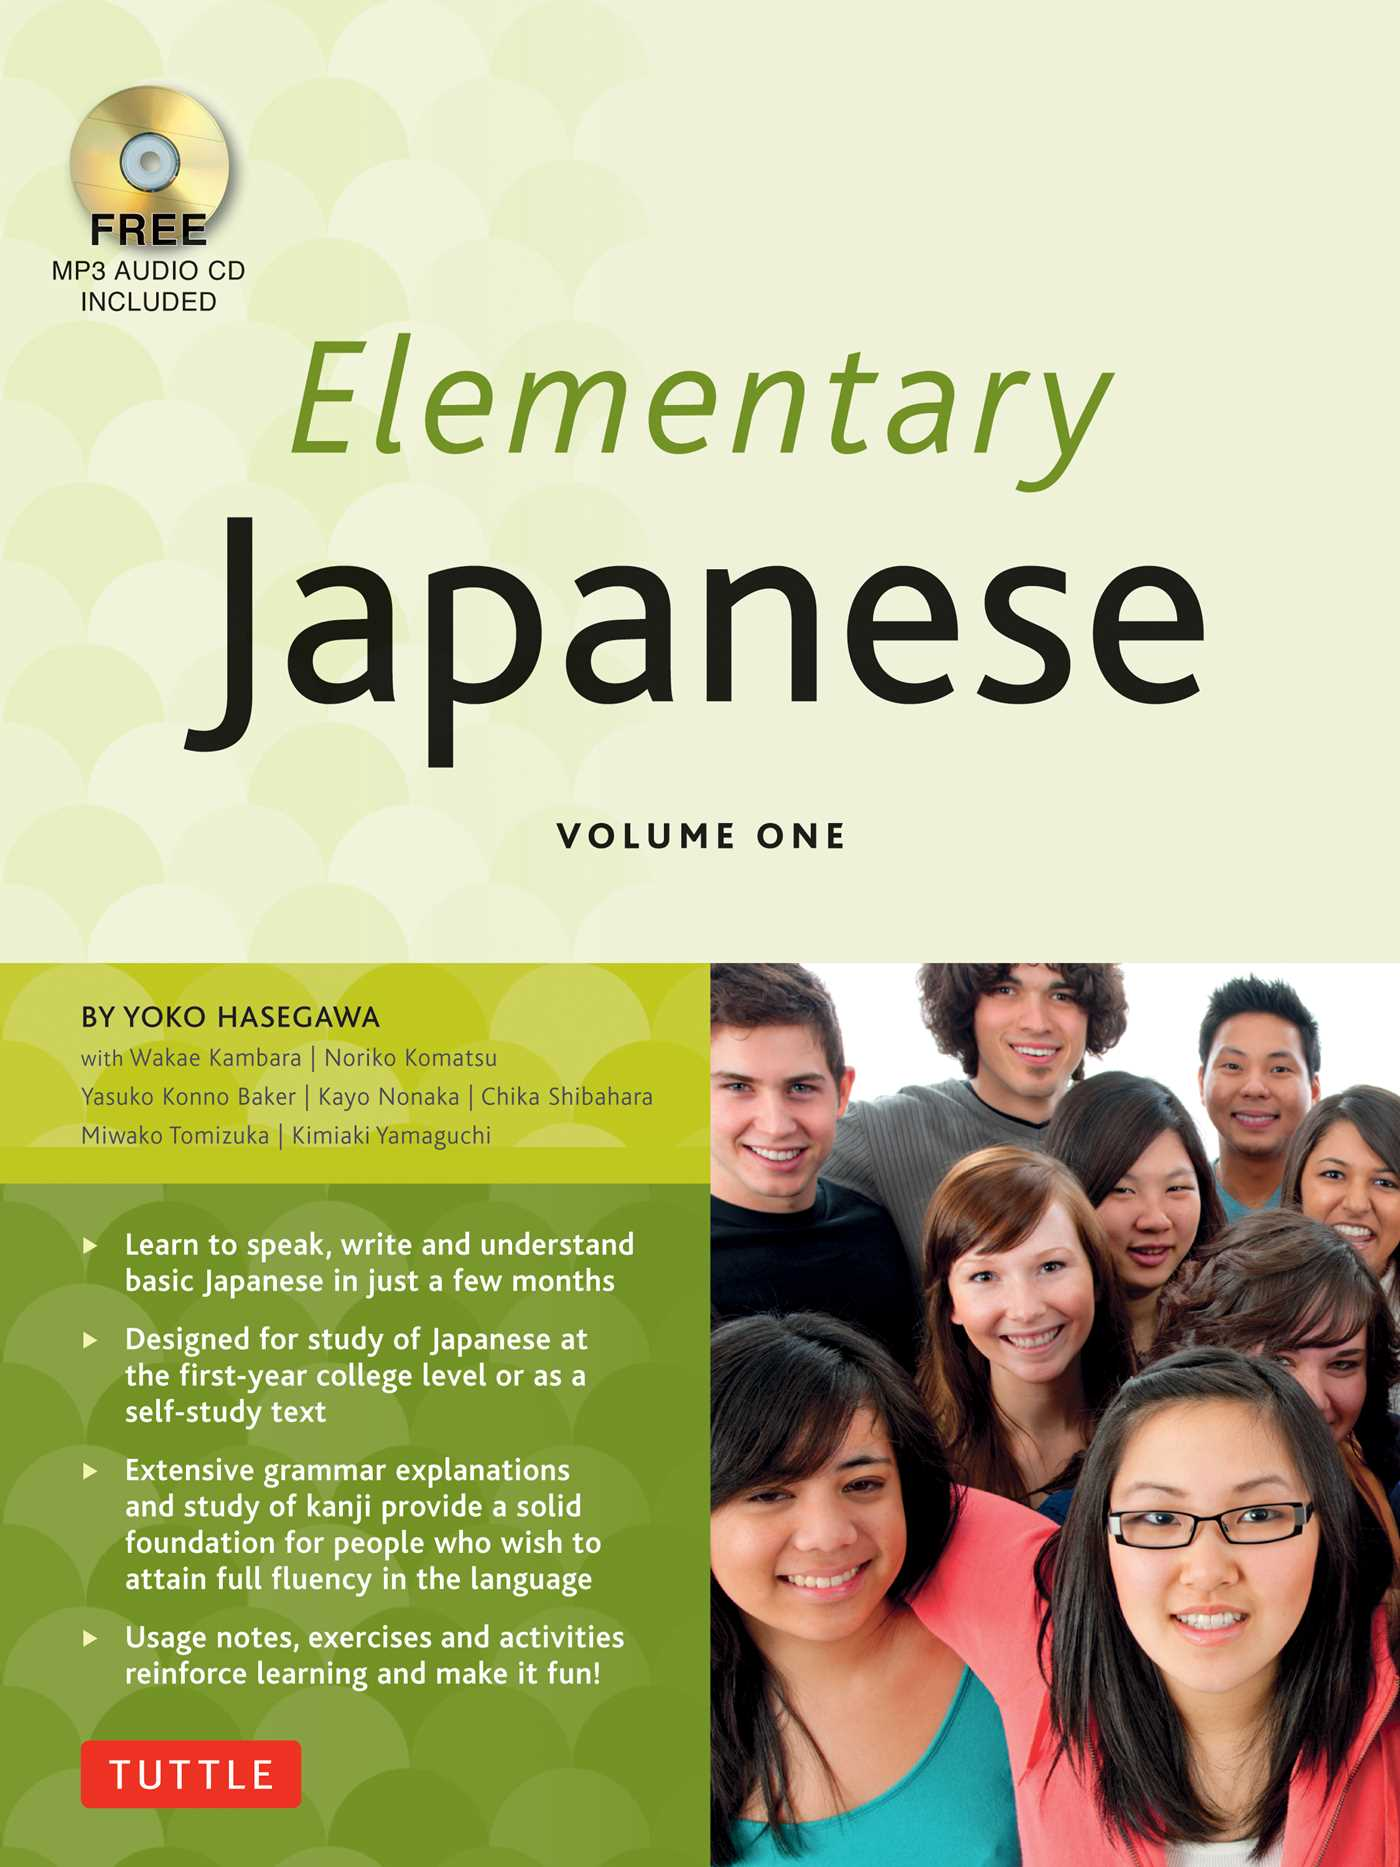 Elementary japanese volume one 9784805313688 hr